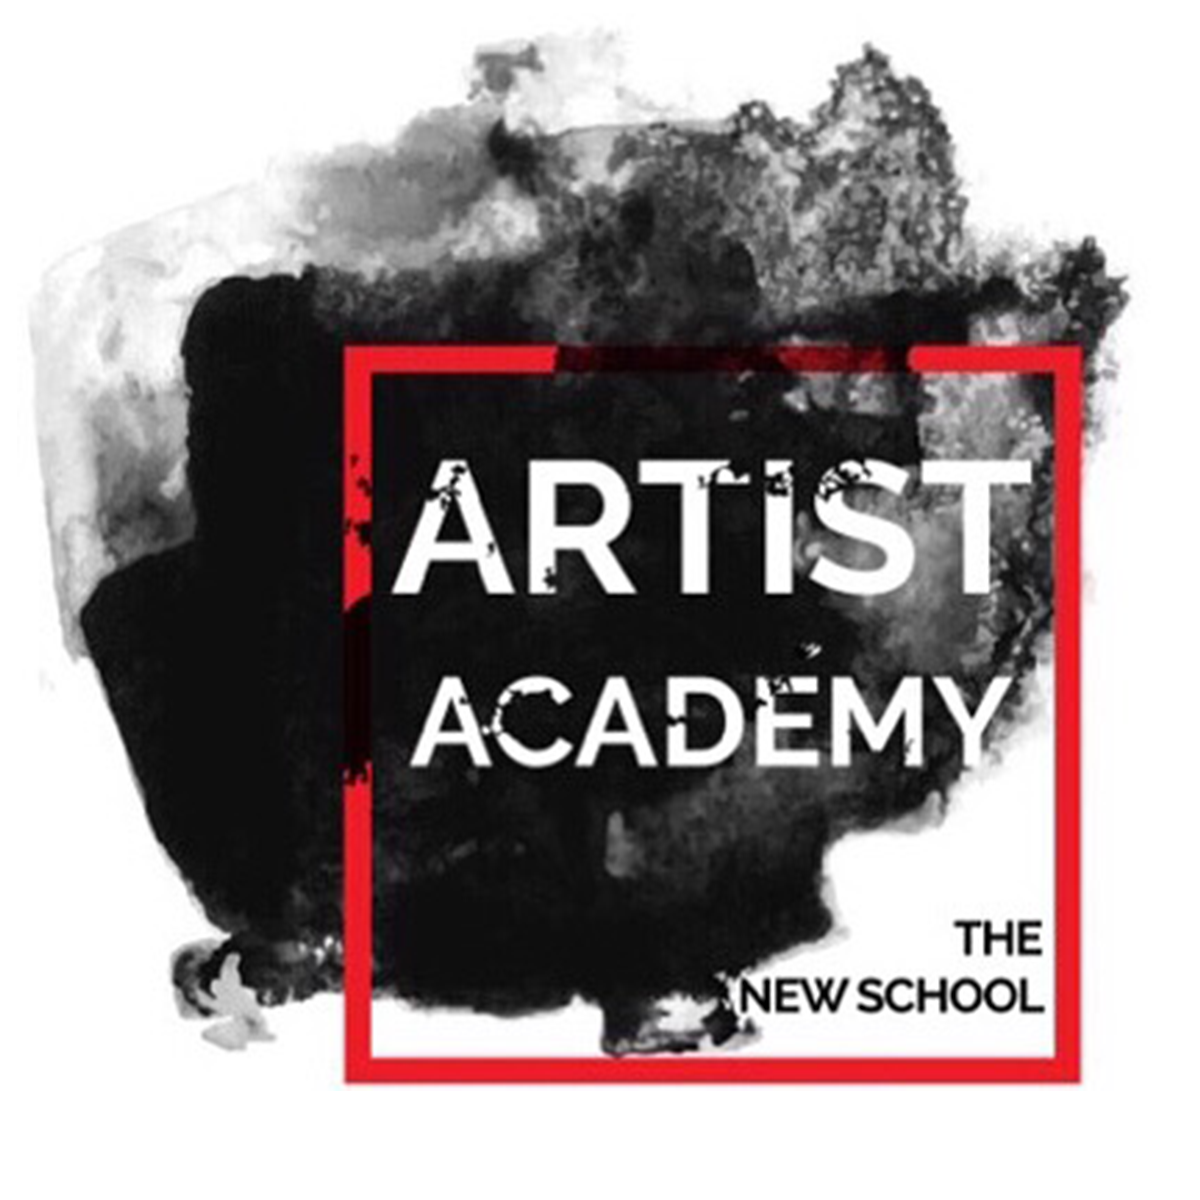 Artist Academy The New School.png